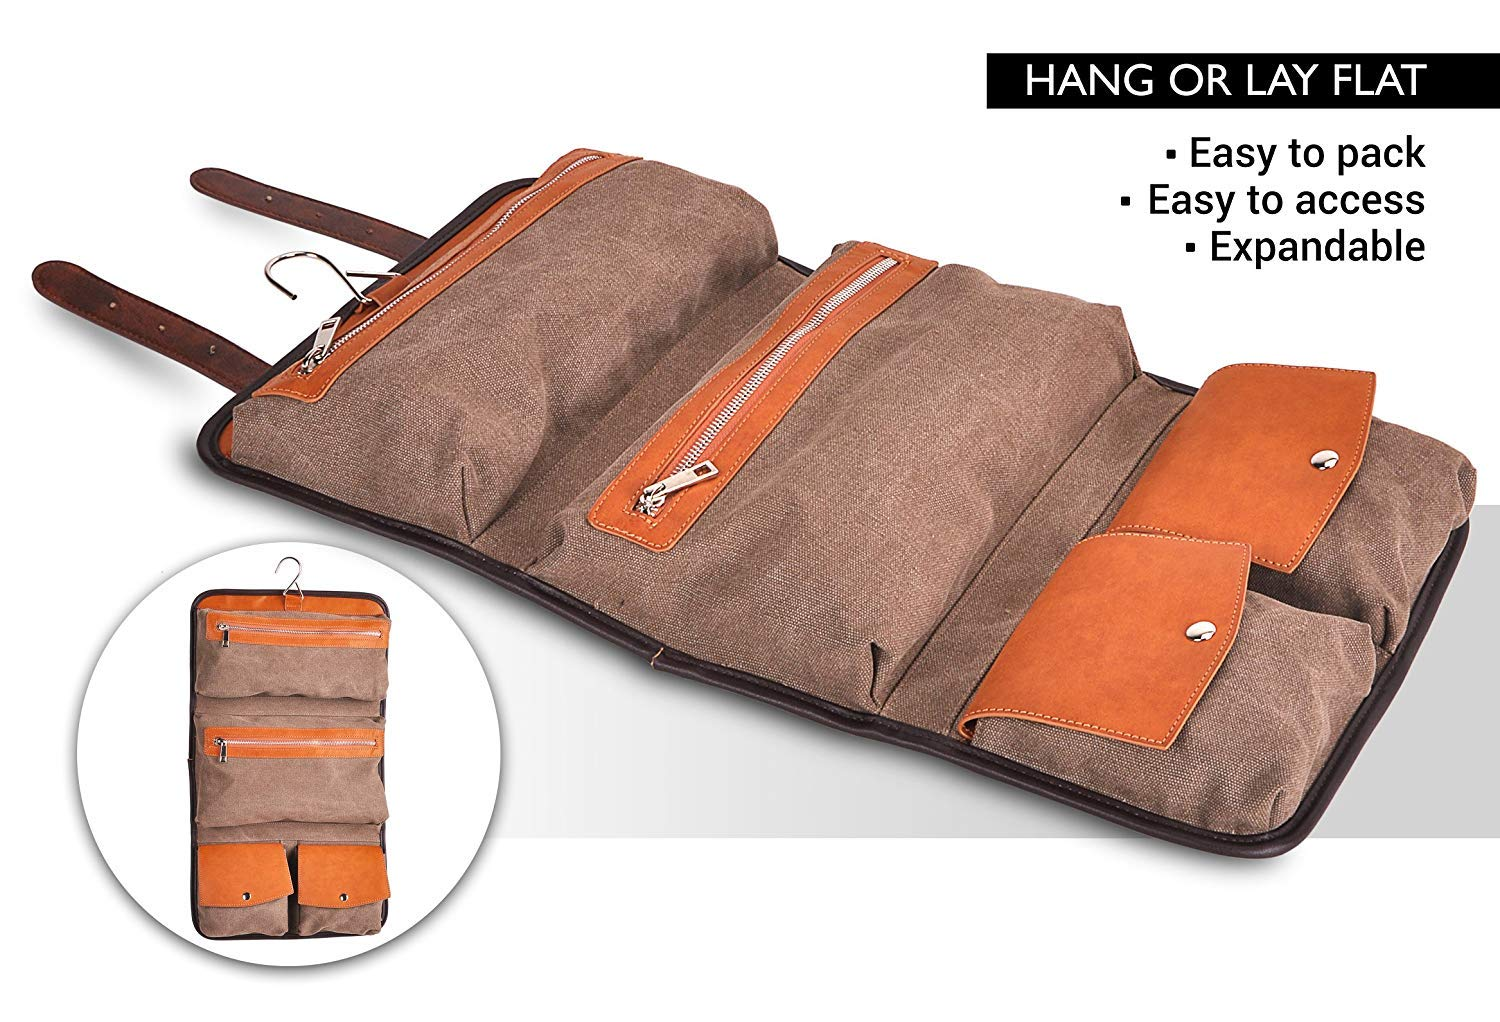 Vetelli Mens Hanging Toilet    Toiletry Bag - Dopp Kit, Wash Bag    Travel  Accessories Bag One Size Brown. V103 Best Christmas gifts 2018 547a0e4955